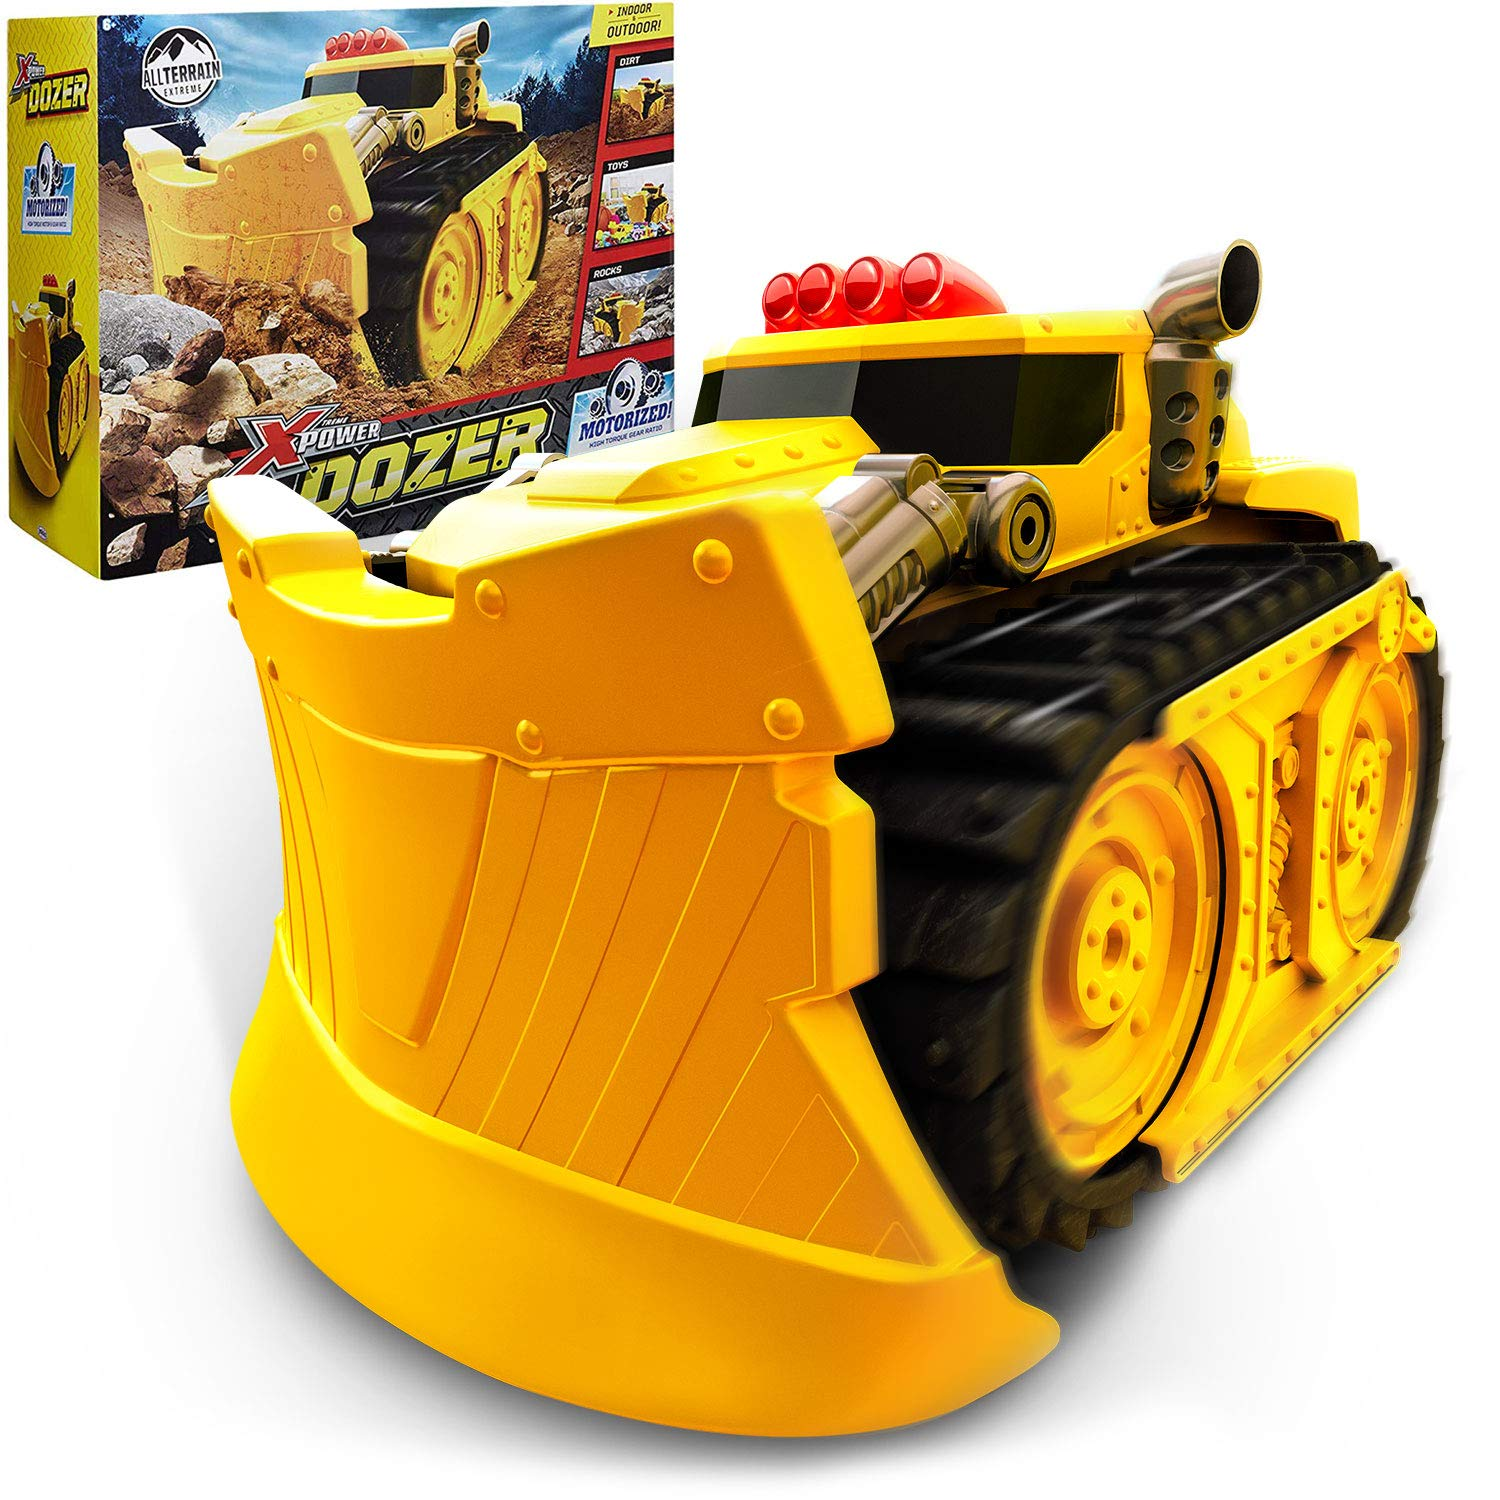 Xtreme Power Dozer - Motorized Extreme Bulldozer Toy Truck for Toddler Boys & Kids Who Love Construction Toys - Plow Through Dirt, Toys, Wood, Rocks - Indoor & Outdoor Play - Spring Summer Fall Winter by Xtreme Power Dozer